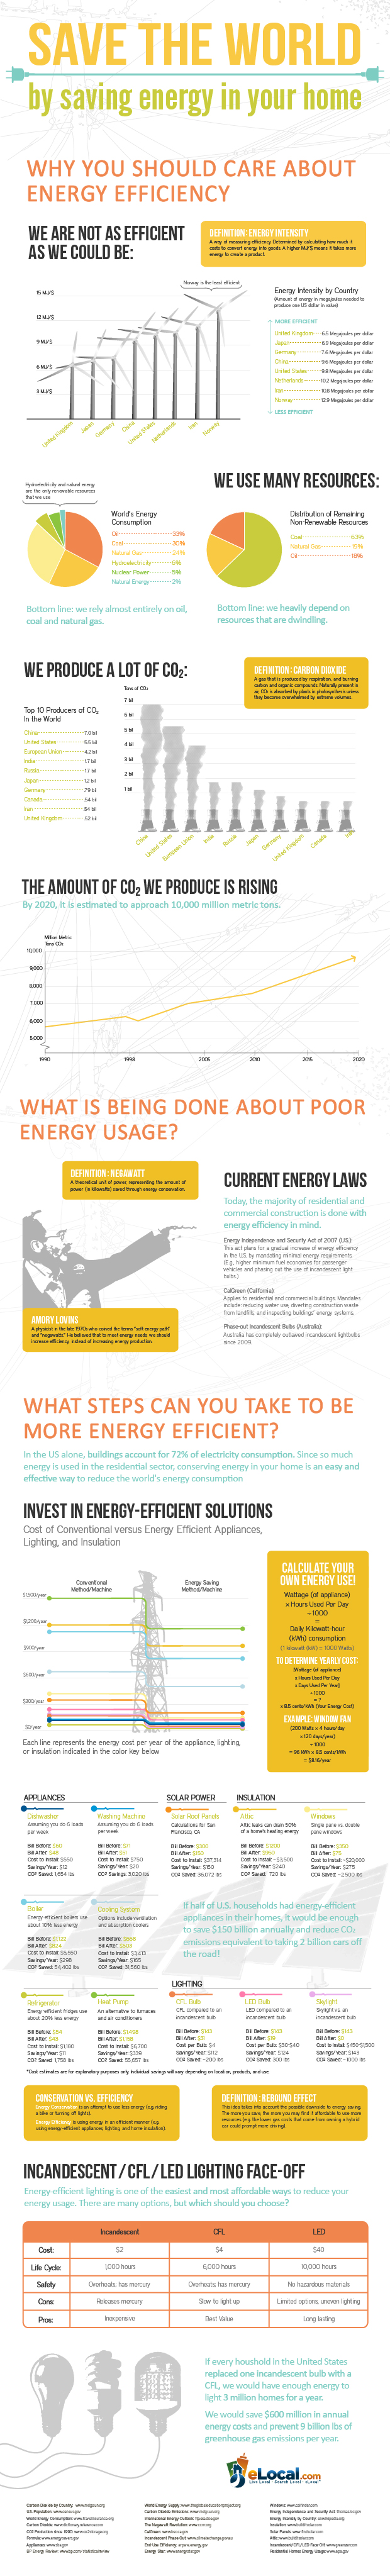 Saving Energy Infographic